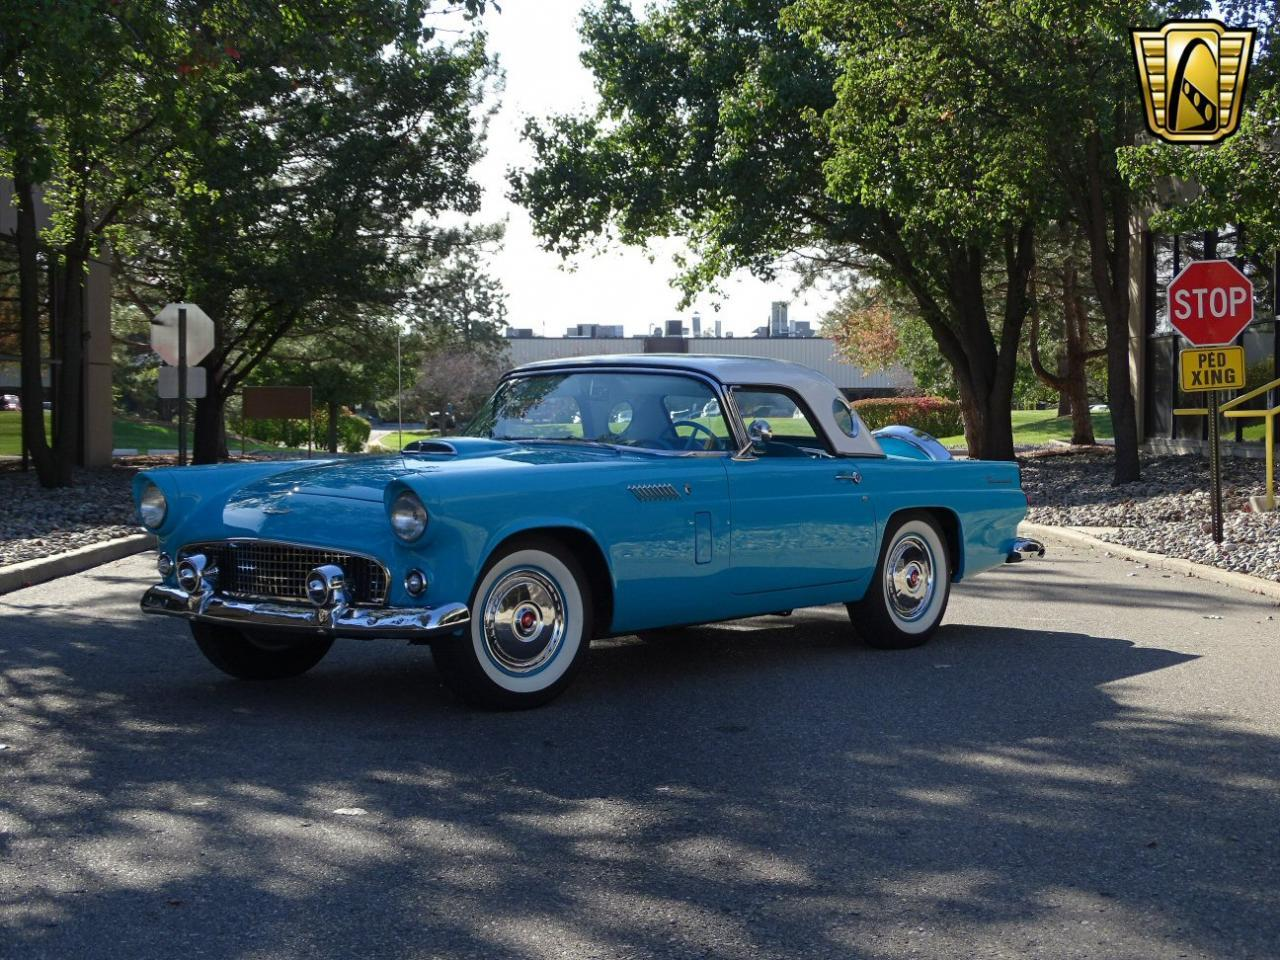 Large Picture of 1956 Ford Thunderbird - $34,995.00 Offered by Gateway Classic Cars - Detroit - M6BX